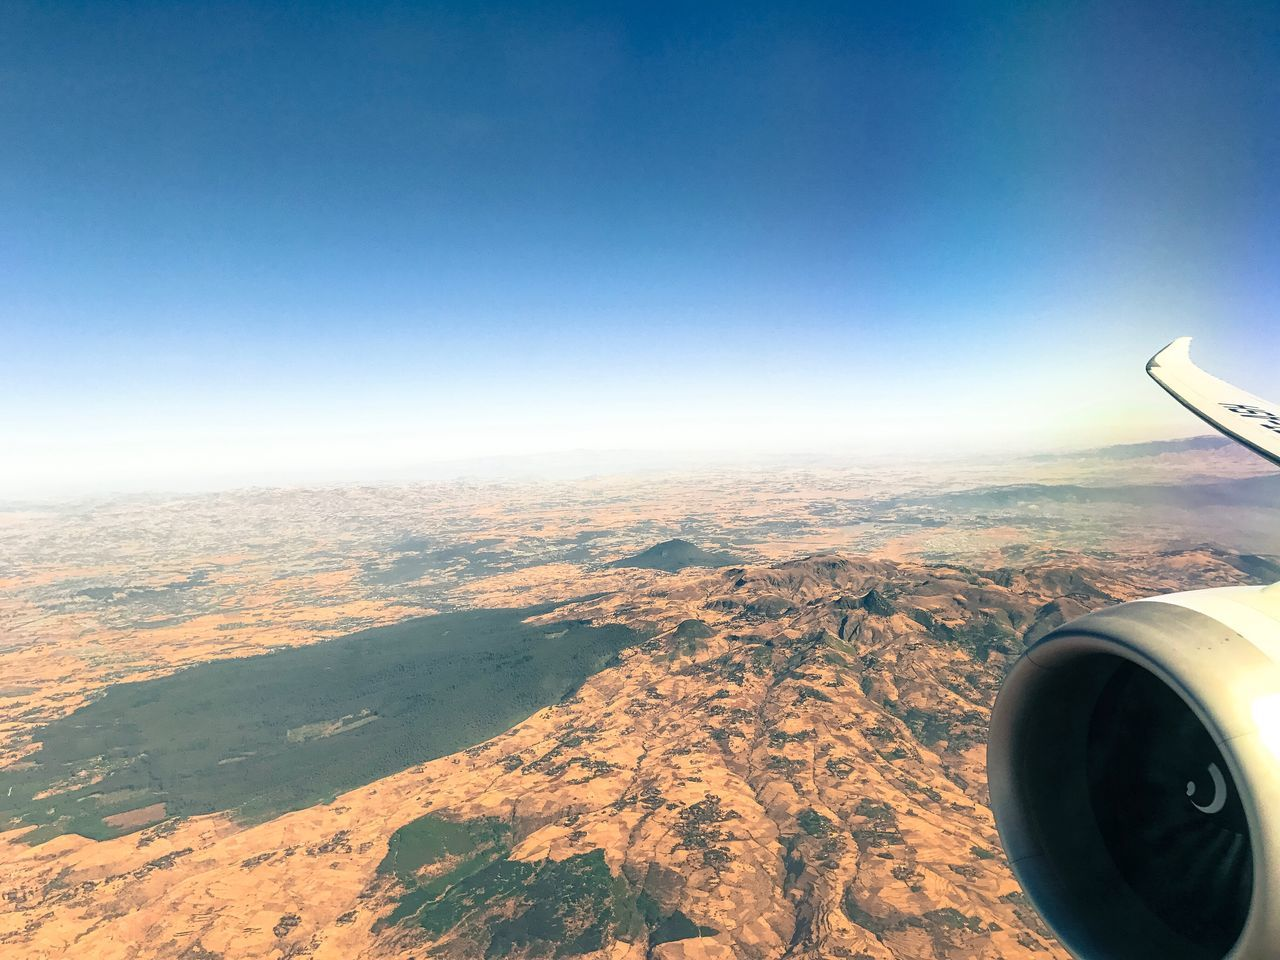 aerial view, airplane, transportation, journey, air vehicle, mode of transport, flying, travel, mid-air, aircraft wing, nature, airplane wing, jet engine, beauty in nature, scenics, day, outdoors, no people, landscape, vehicle part, sky